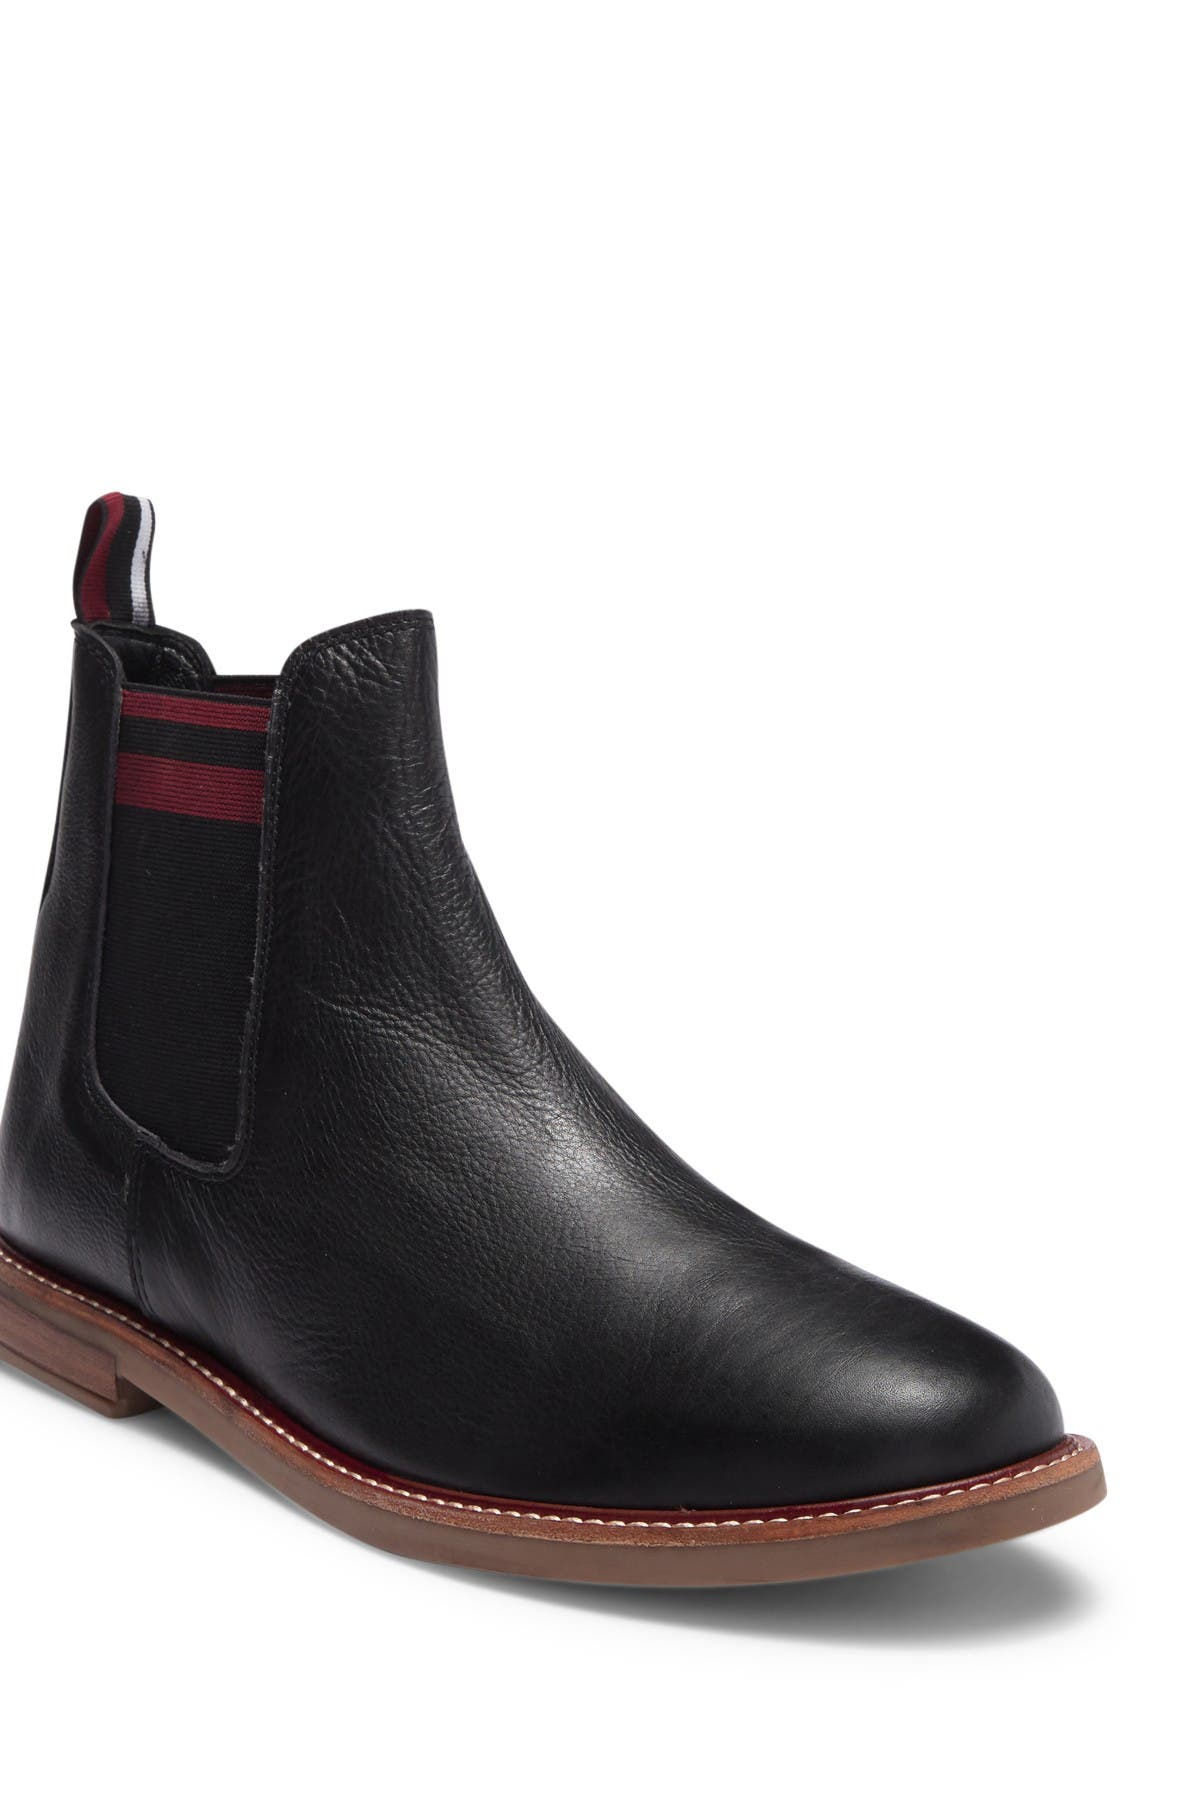 Image of Ben Sherman Brent Leather Chelsea Boot